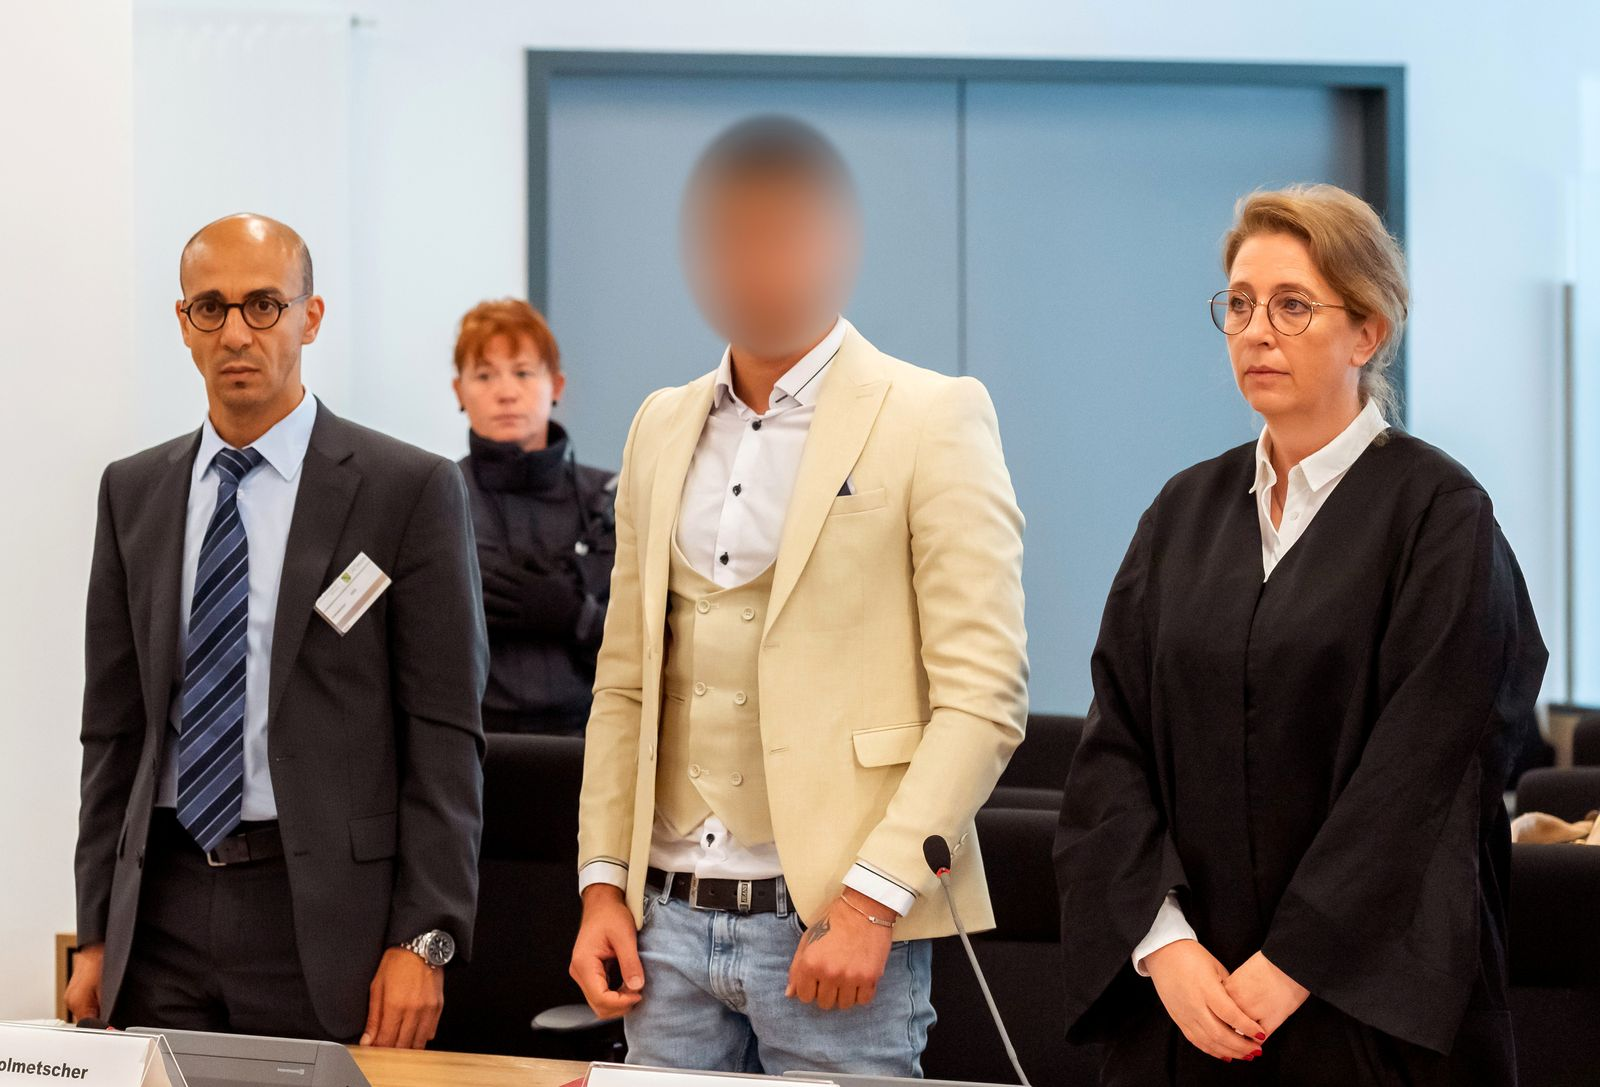 GERMANY-TRIAL/CHEMNITZ